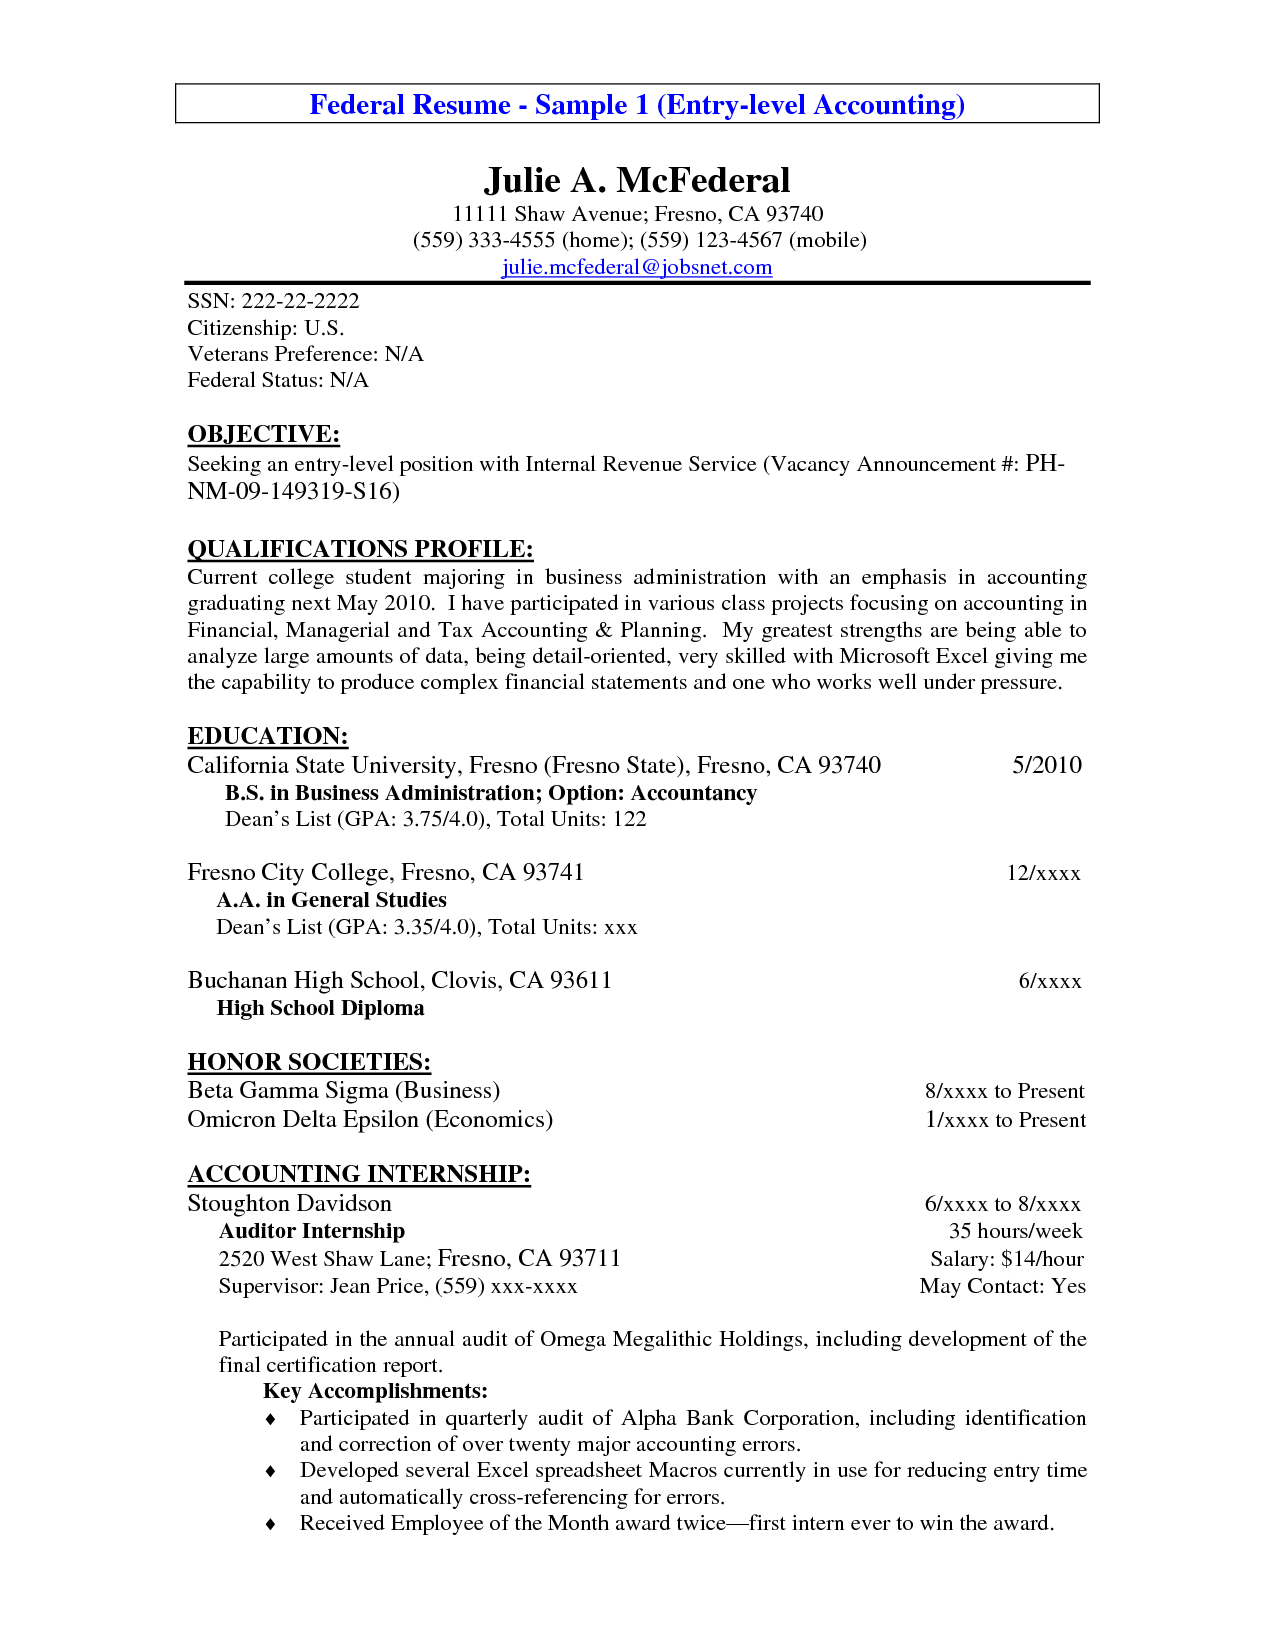 Objective Resume Ann Debusschere A_Debusschere On Pinterest